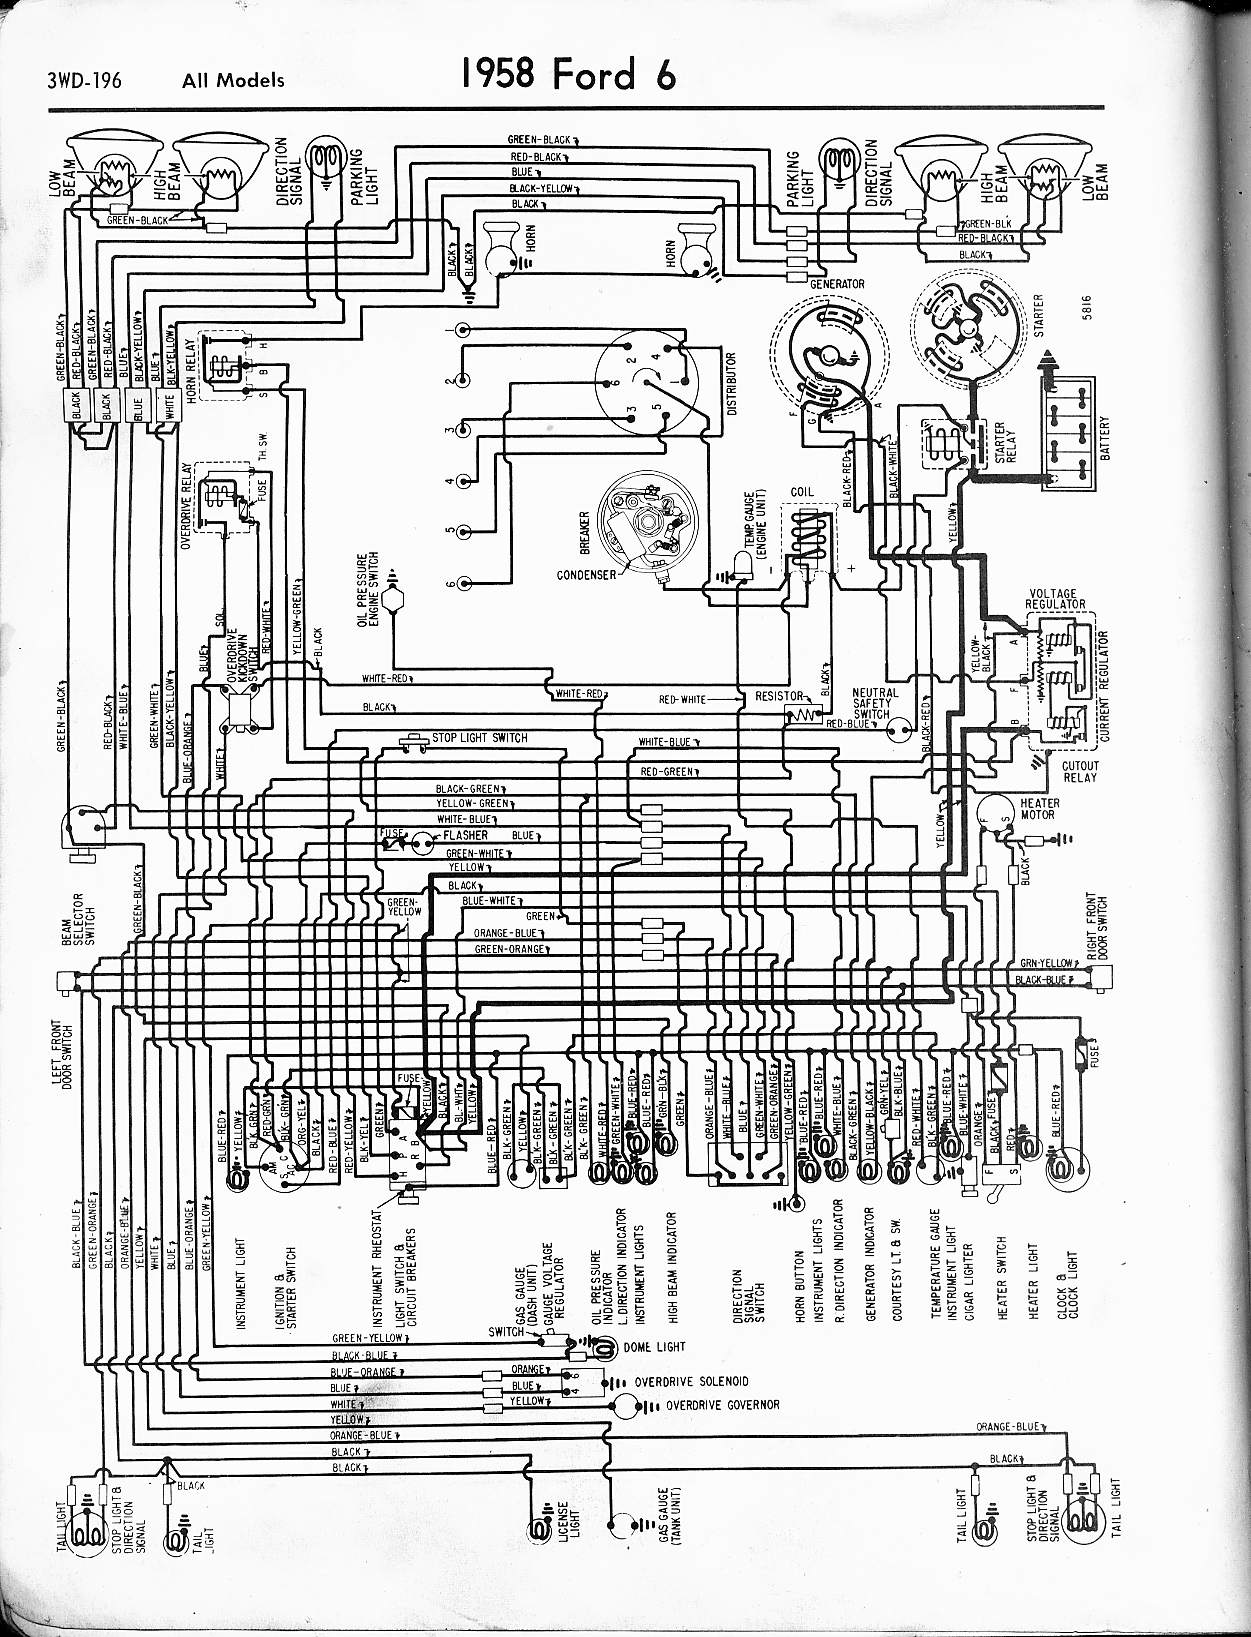 MWire5765 196 57 65 ford wiring diagrams ford wiring diagrams at creativeand.co